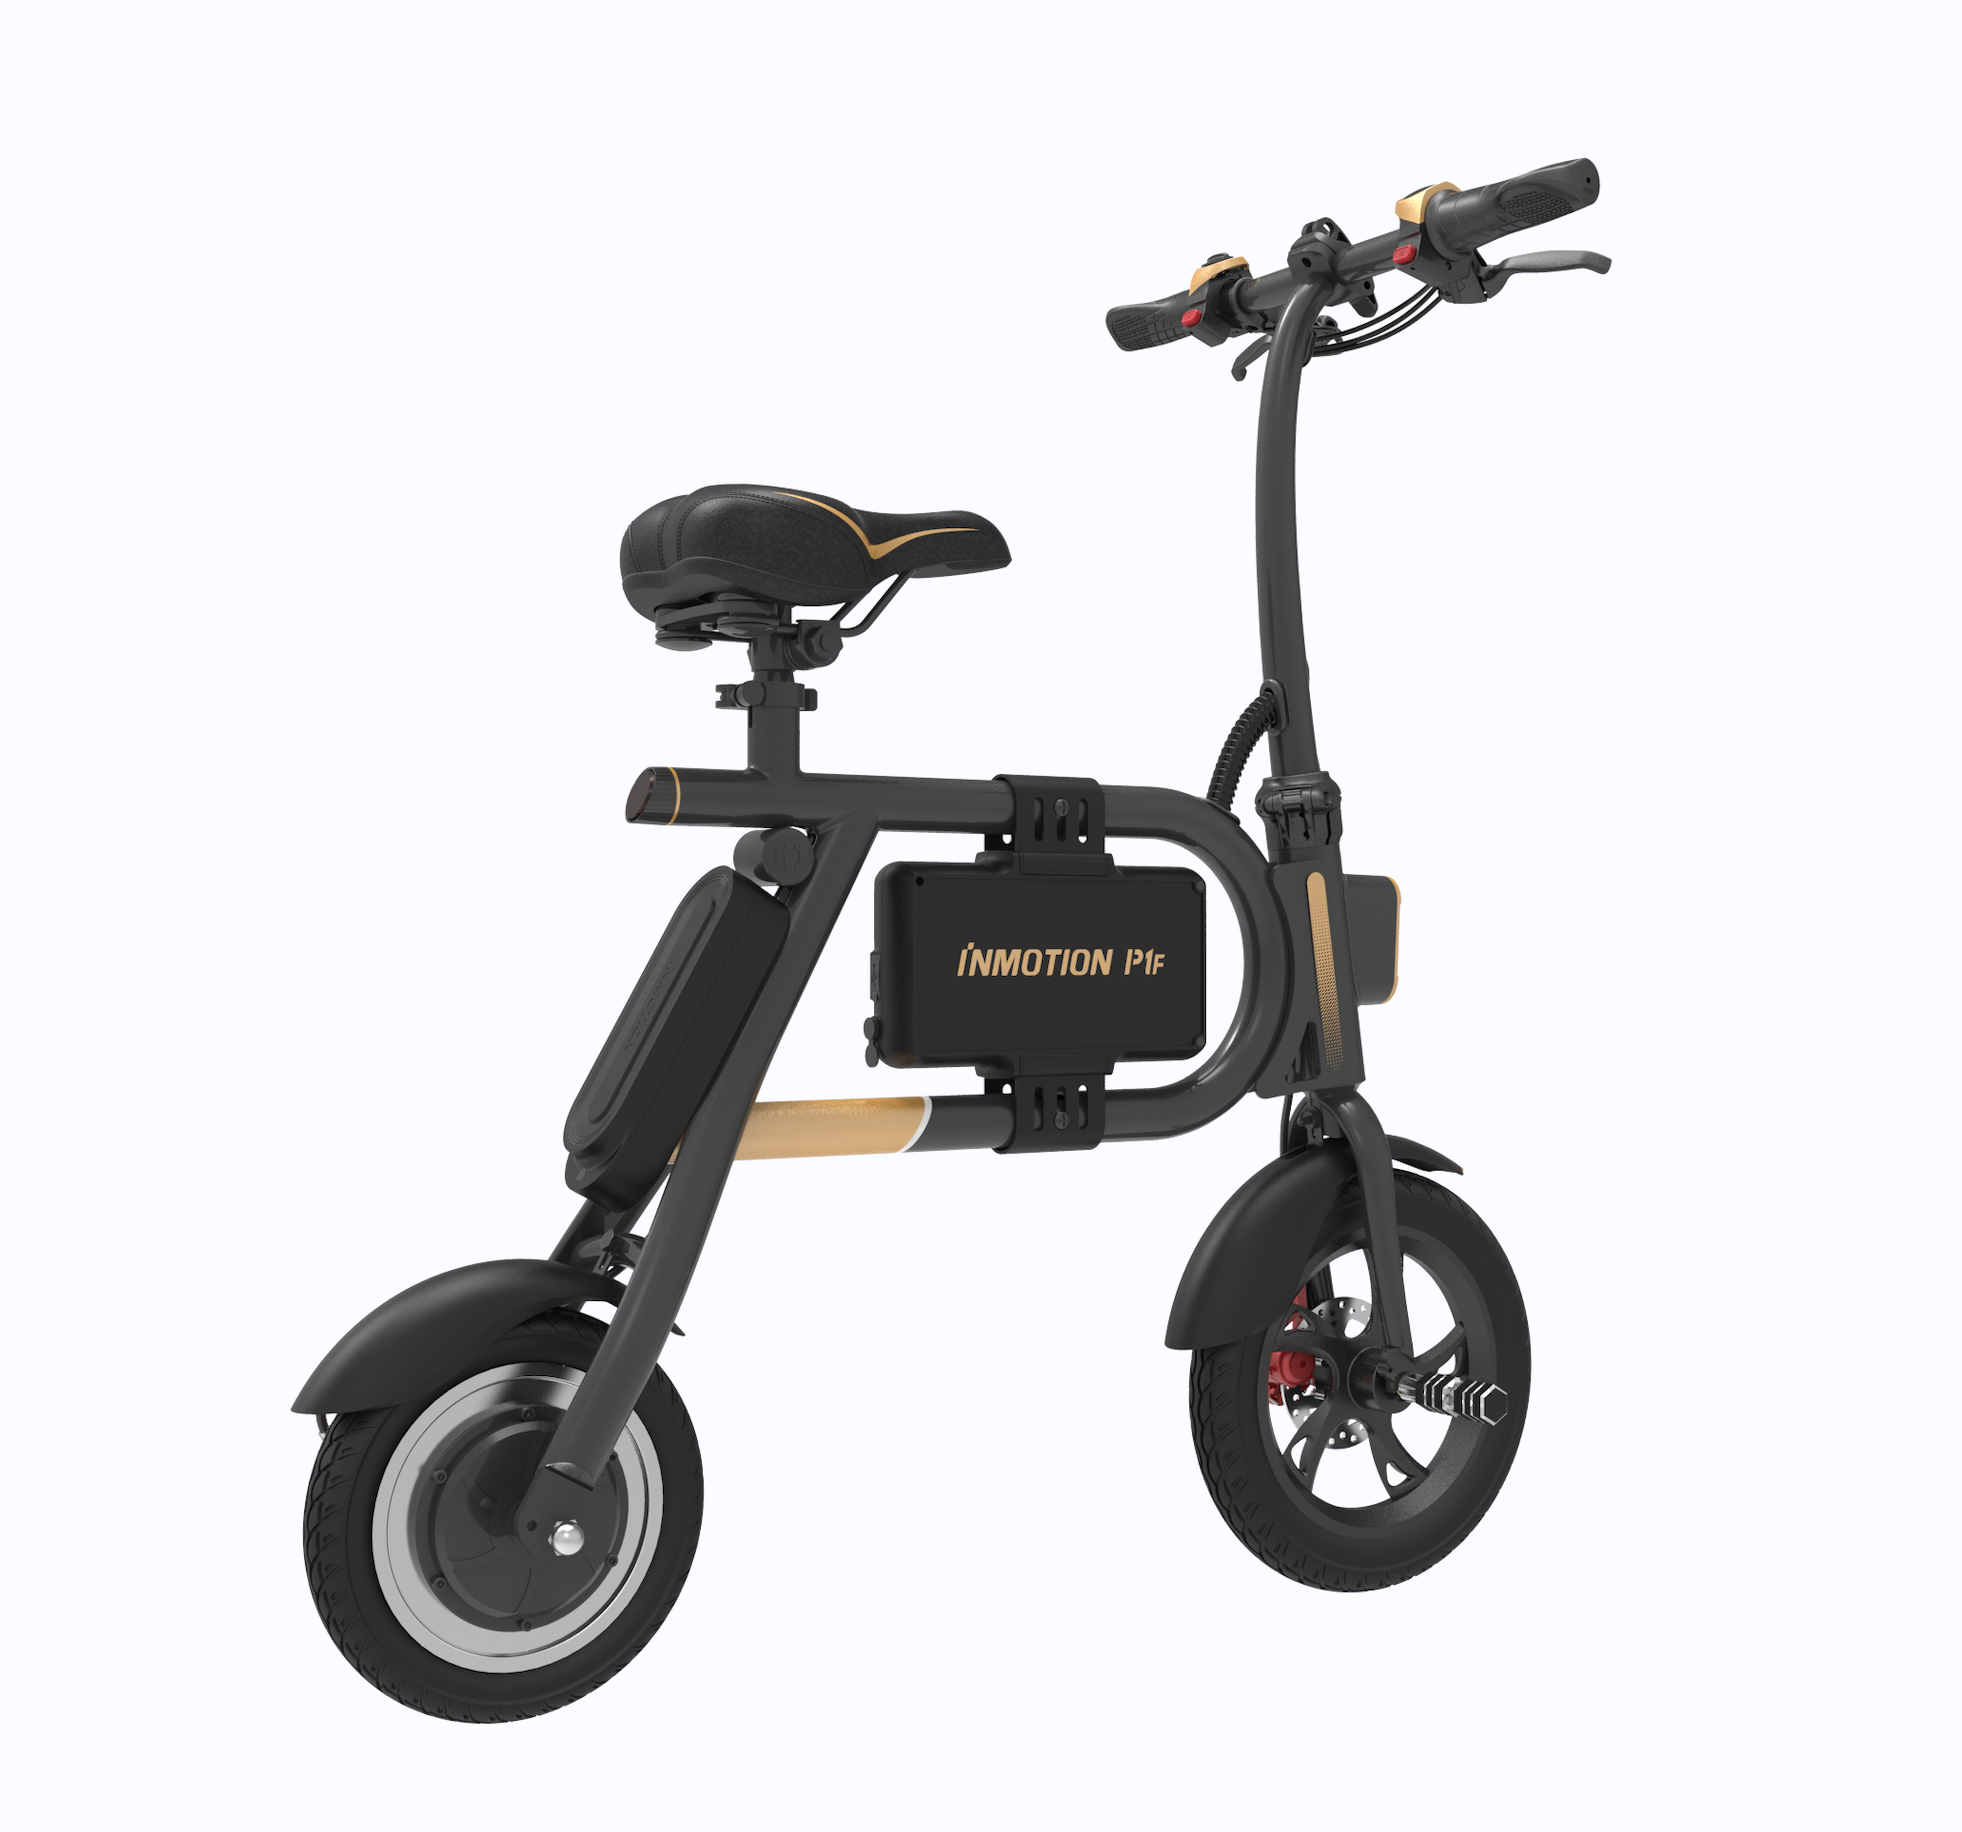 InMotion P1F Electric Scooter Reverse Image